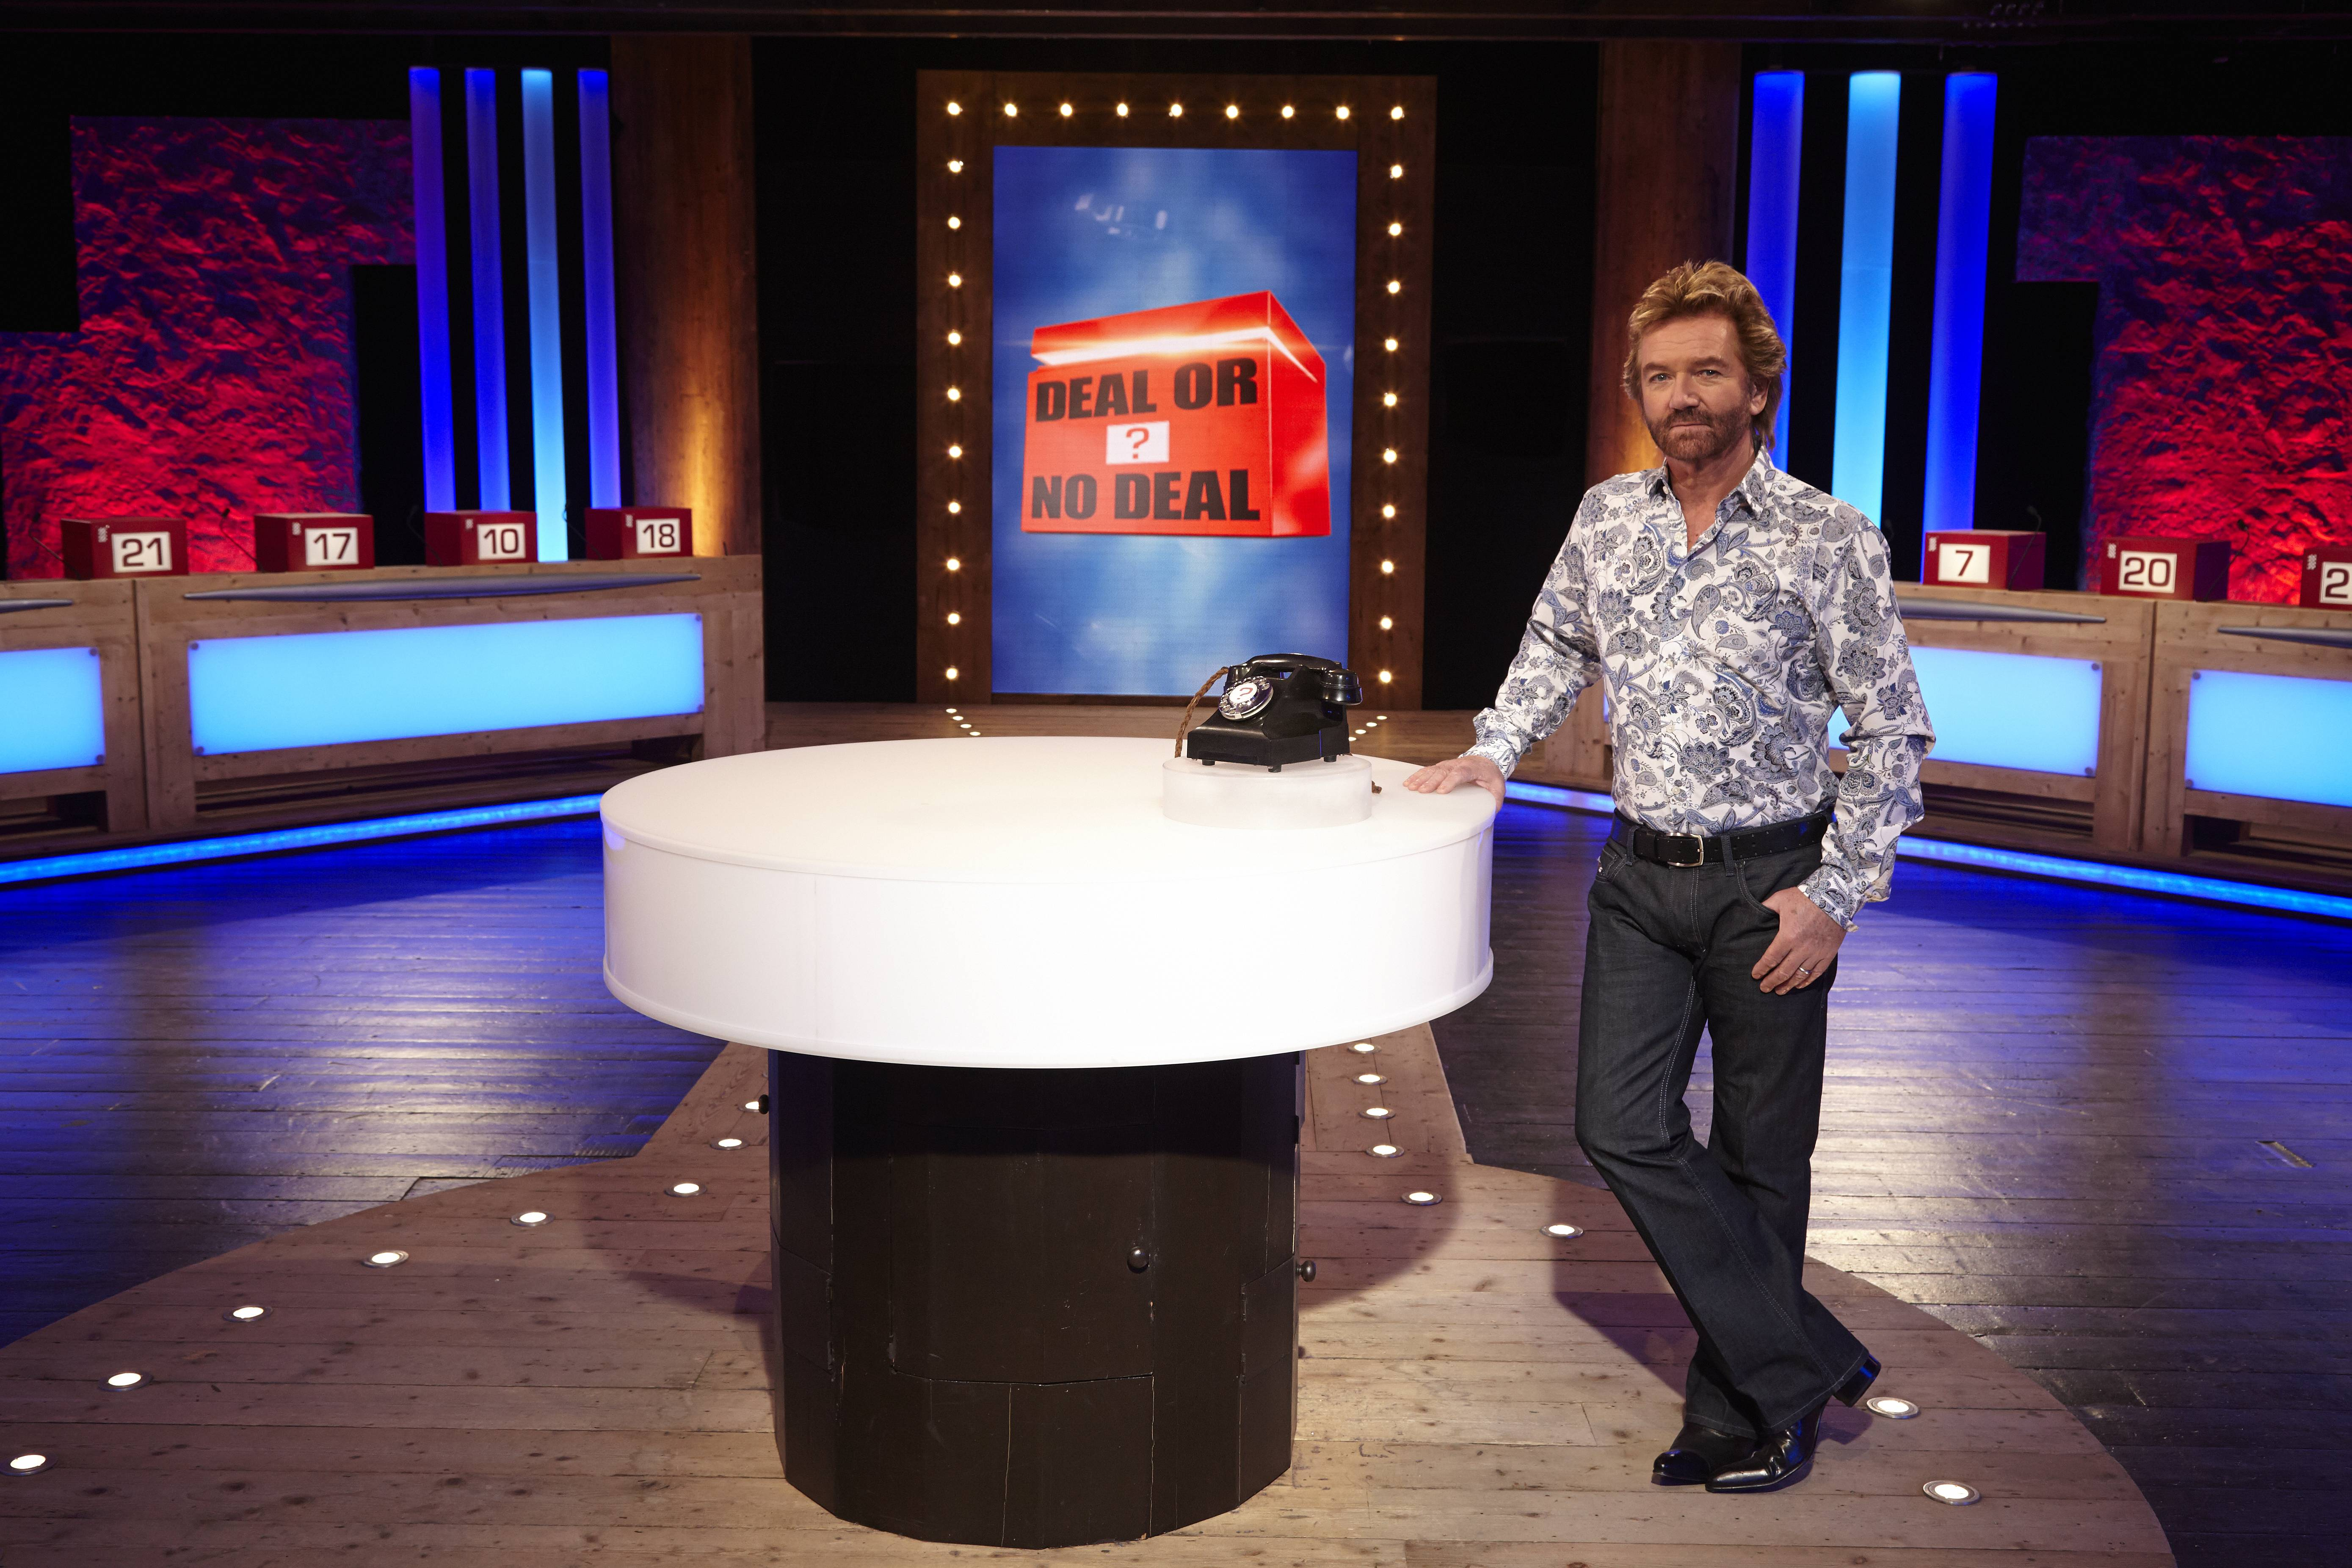 Deal Or No Deal To End But Noel Edmonds Already Has Two